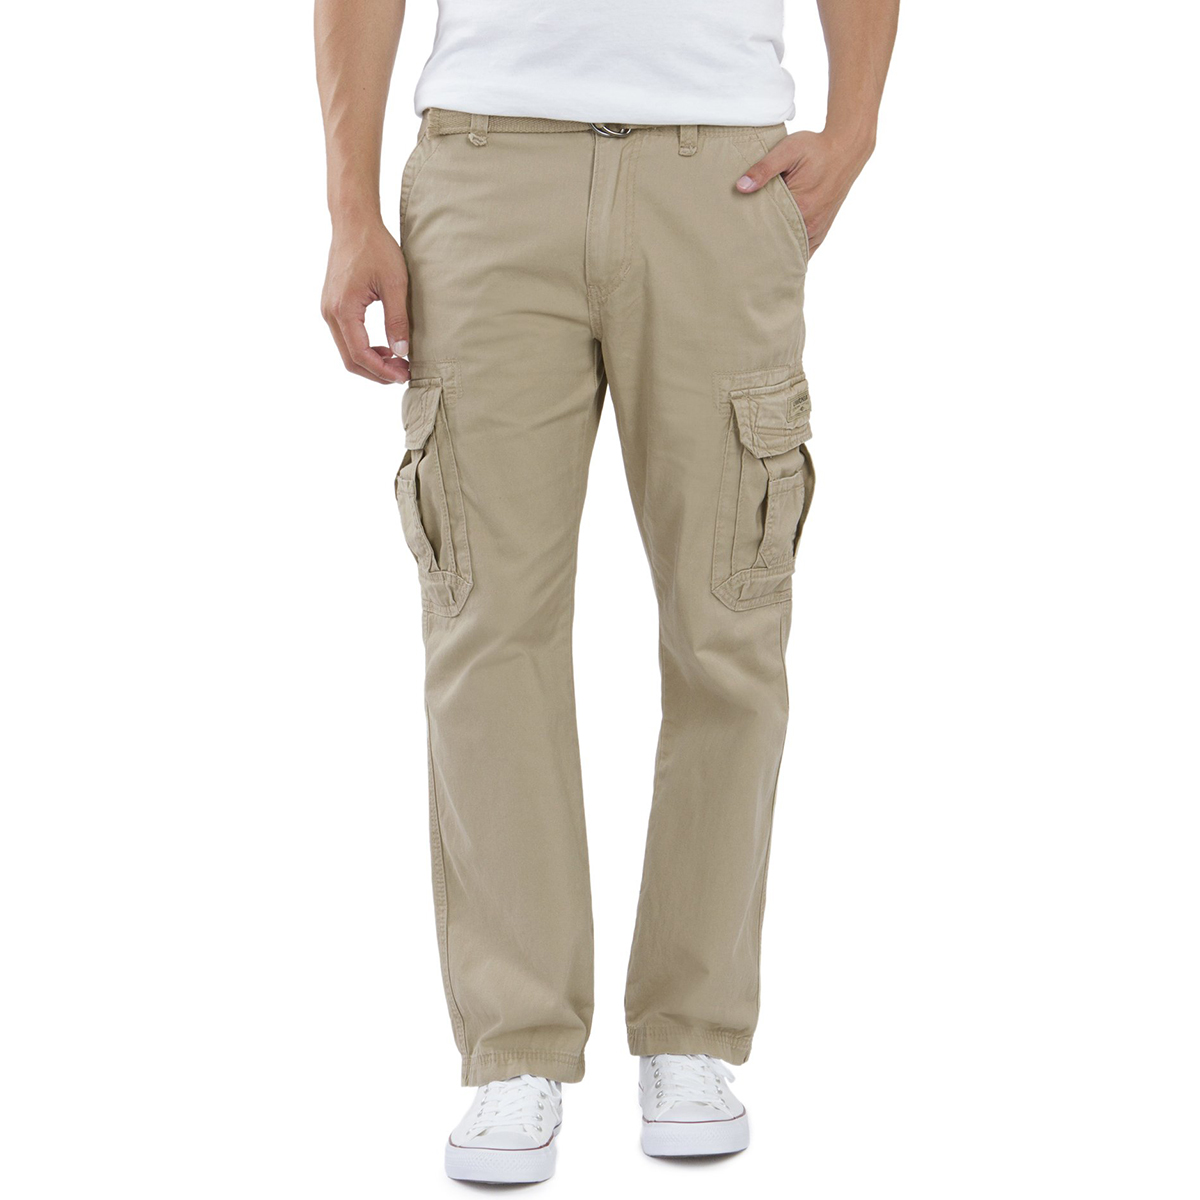 Unionbay Men's Survivor Cargo Pants - Brown, 29/30